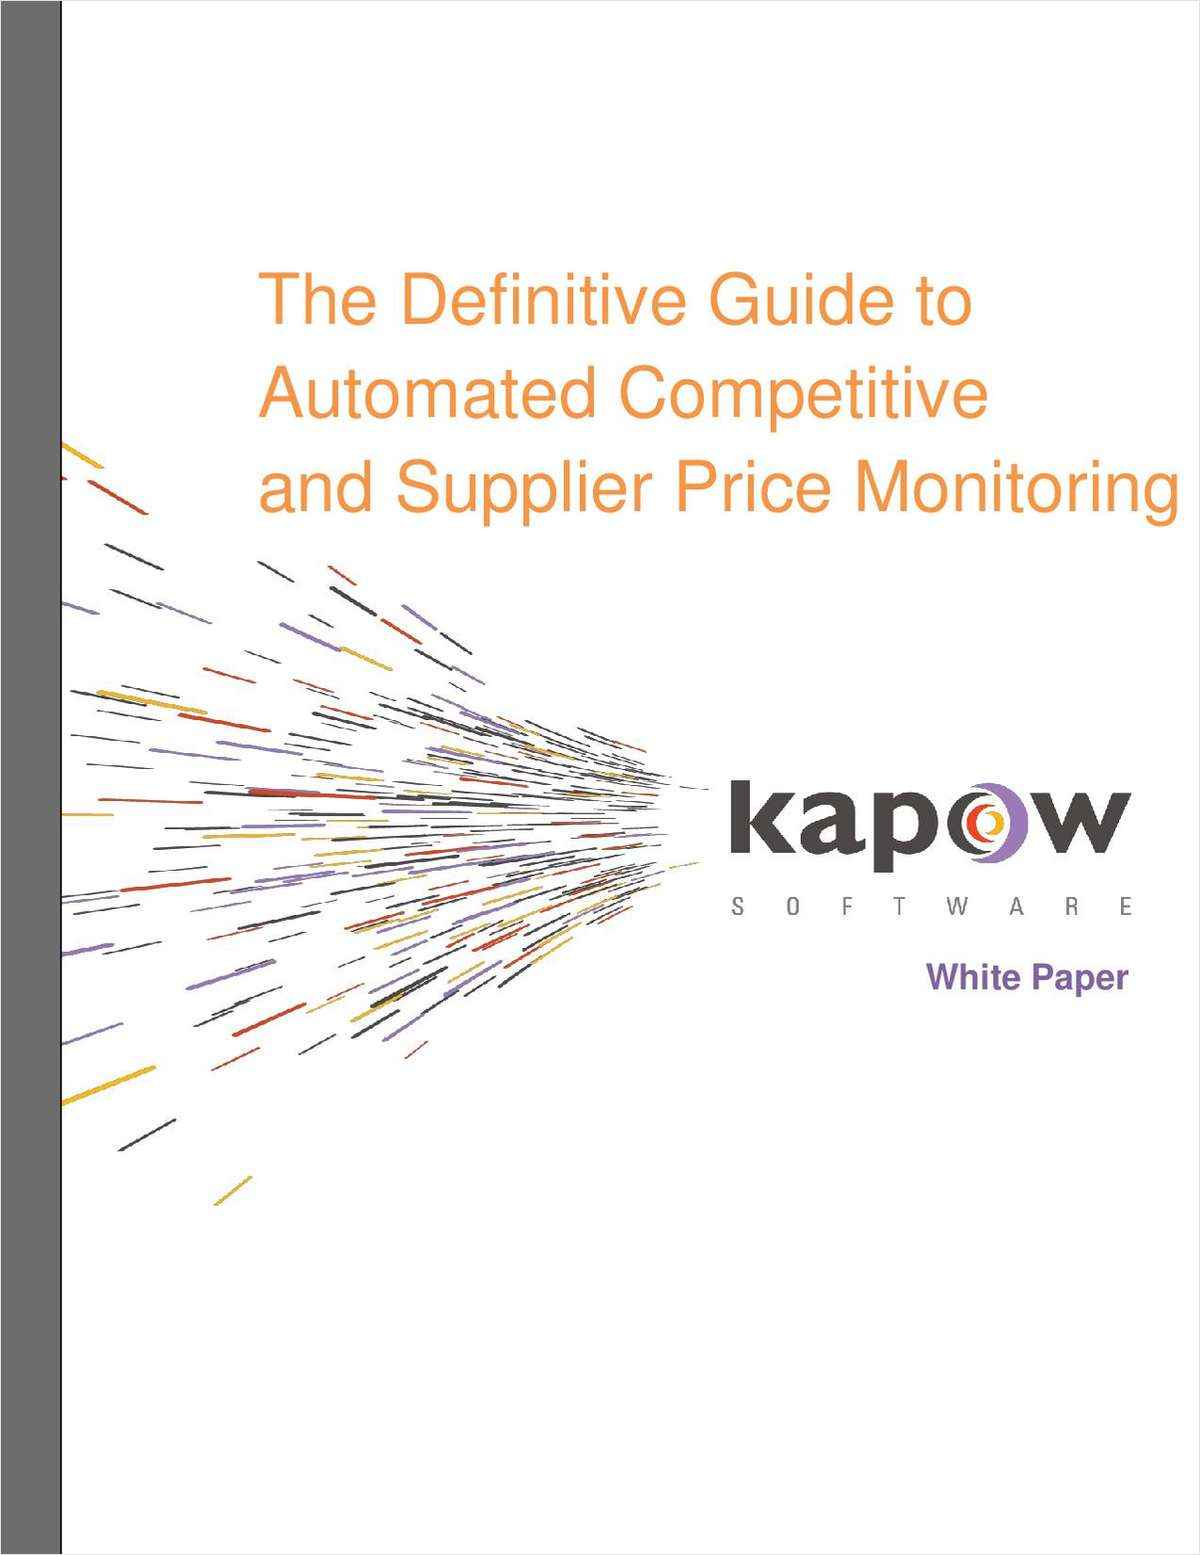 The Definitive Guide to Automated Competitive Price Comparison